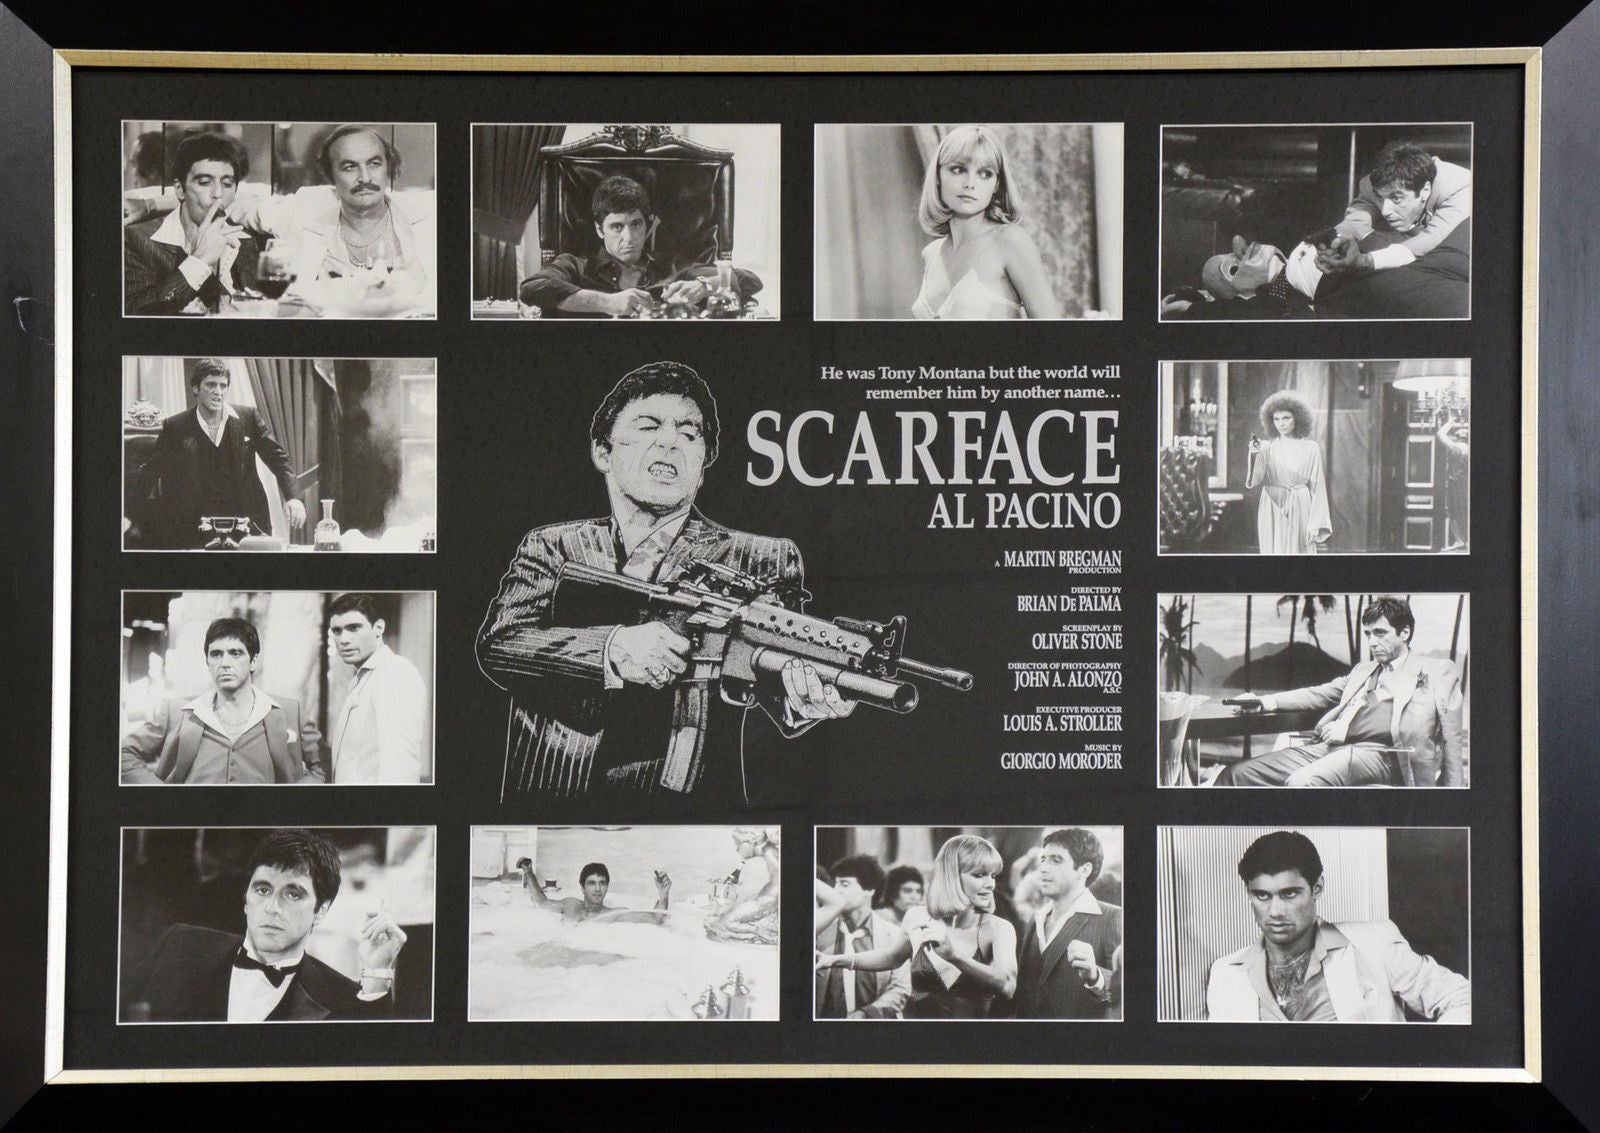 Scarface al pacino framed piece memorabiliawarehouse scarface al pacino framed piece jeuxipadfo Images